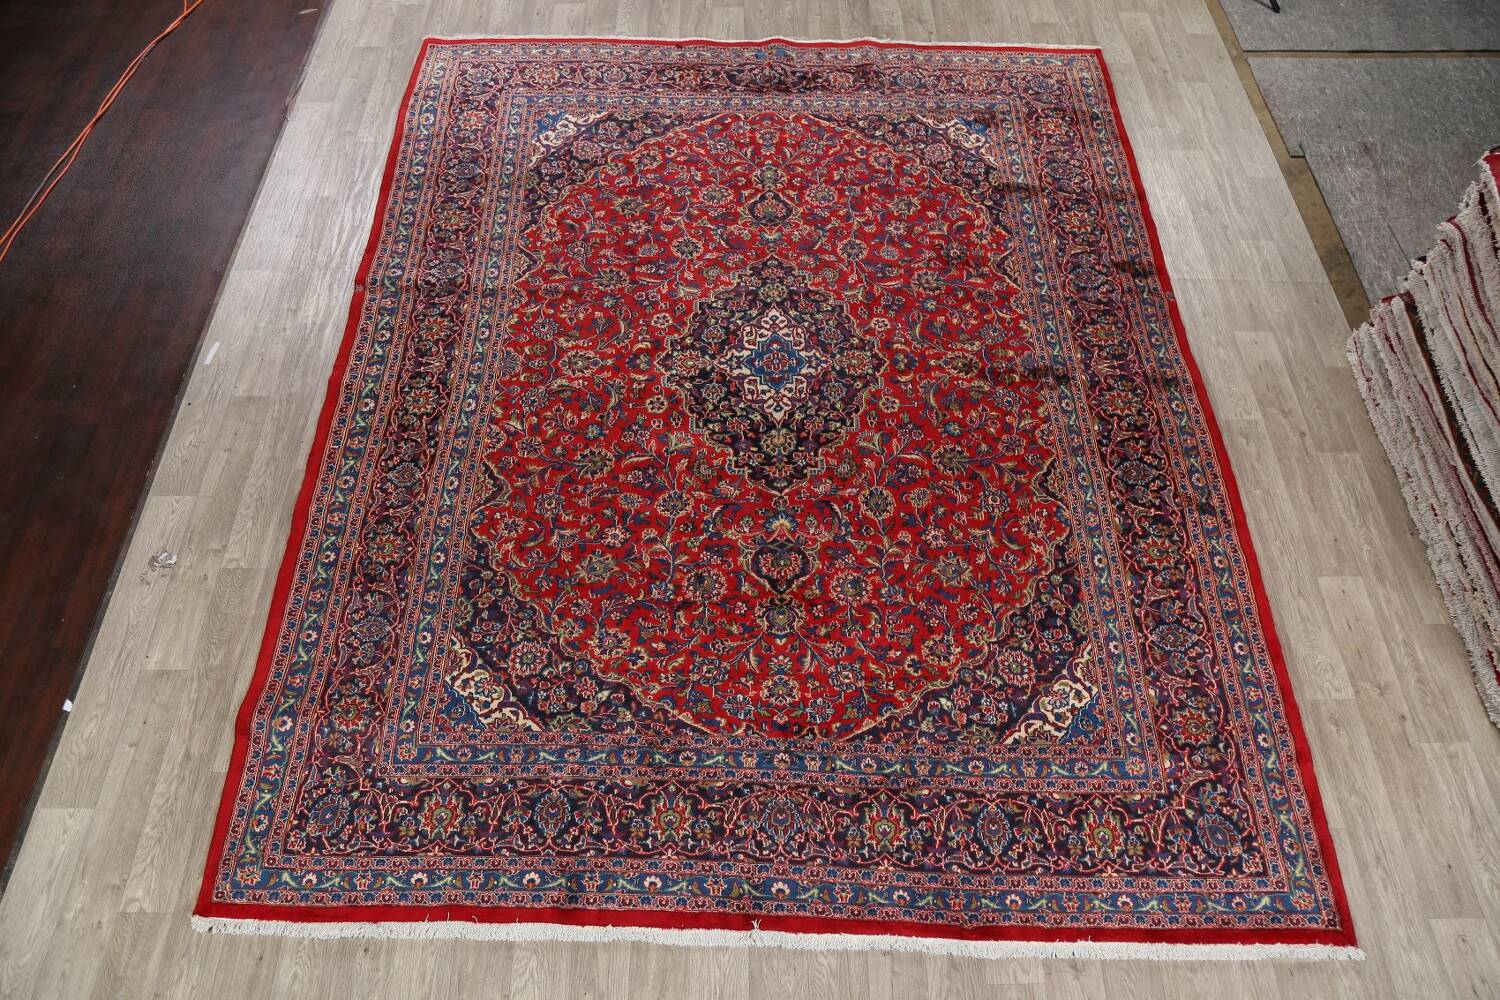 Vintage Floral Red Mashad Persian Area Rug 10x12 image 2